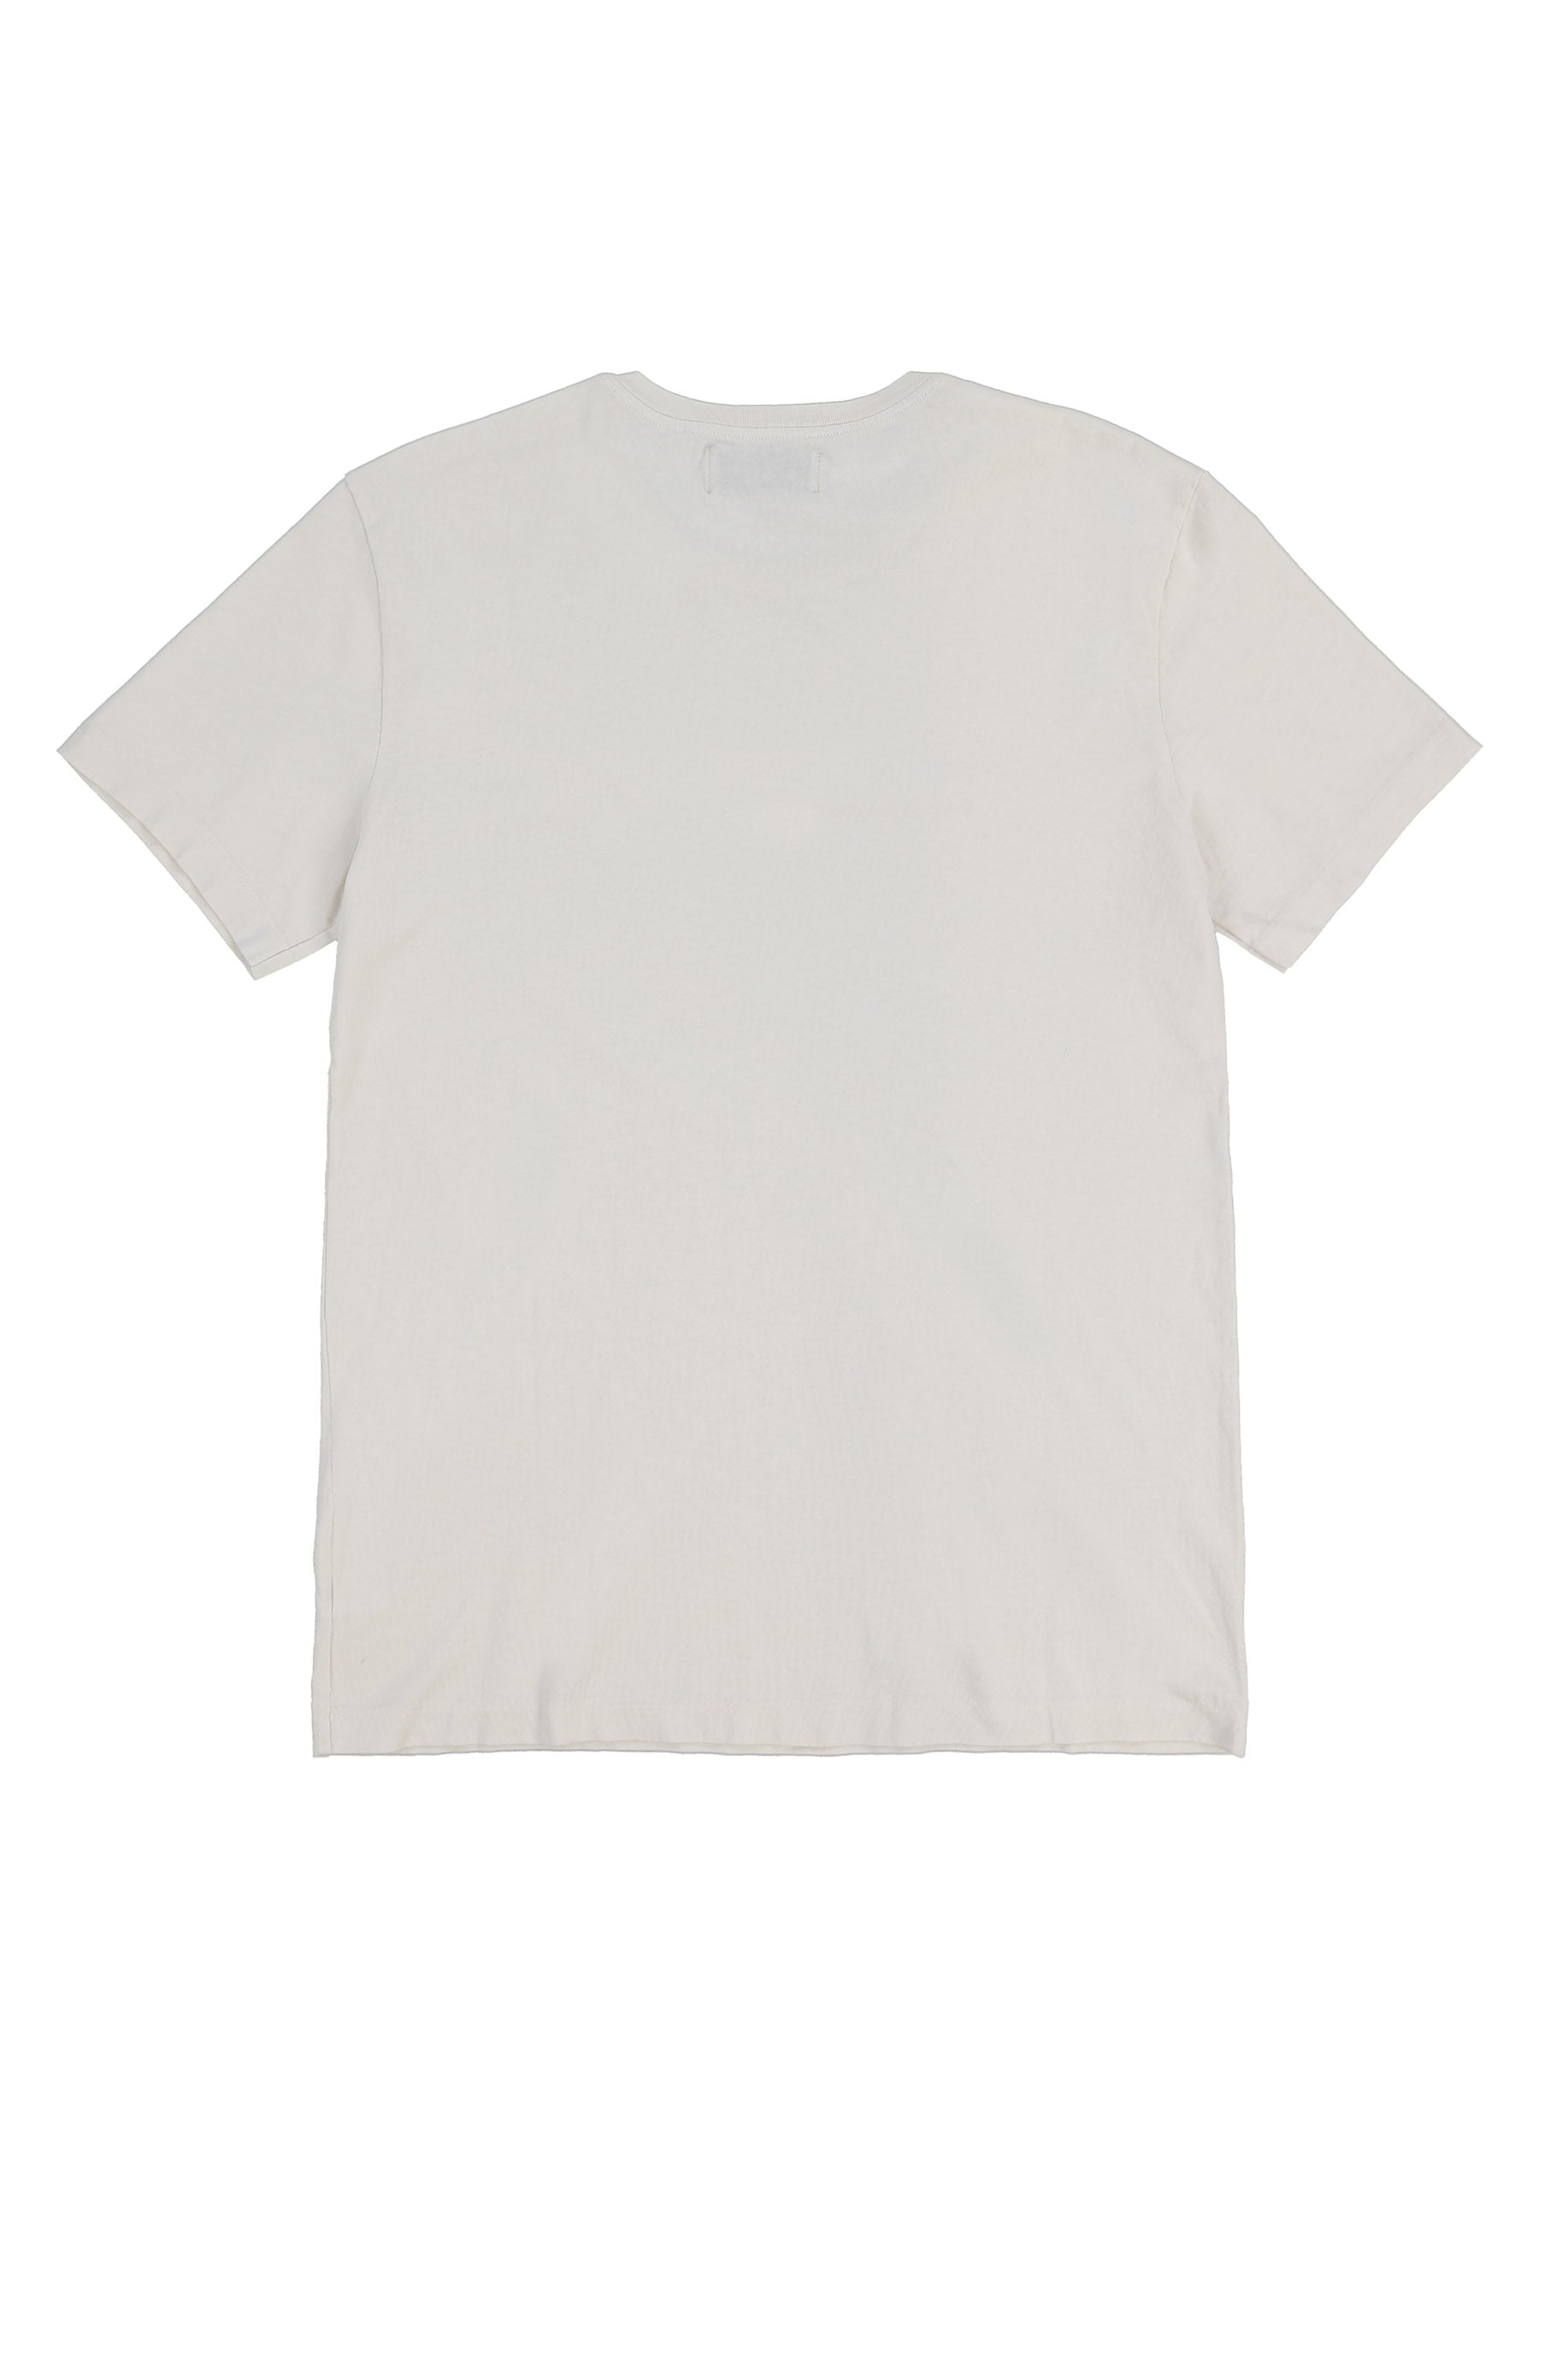 OYSTER NECK LAYERING TEE (VINTAGE WHITE)